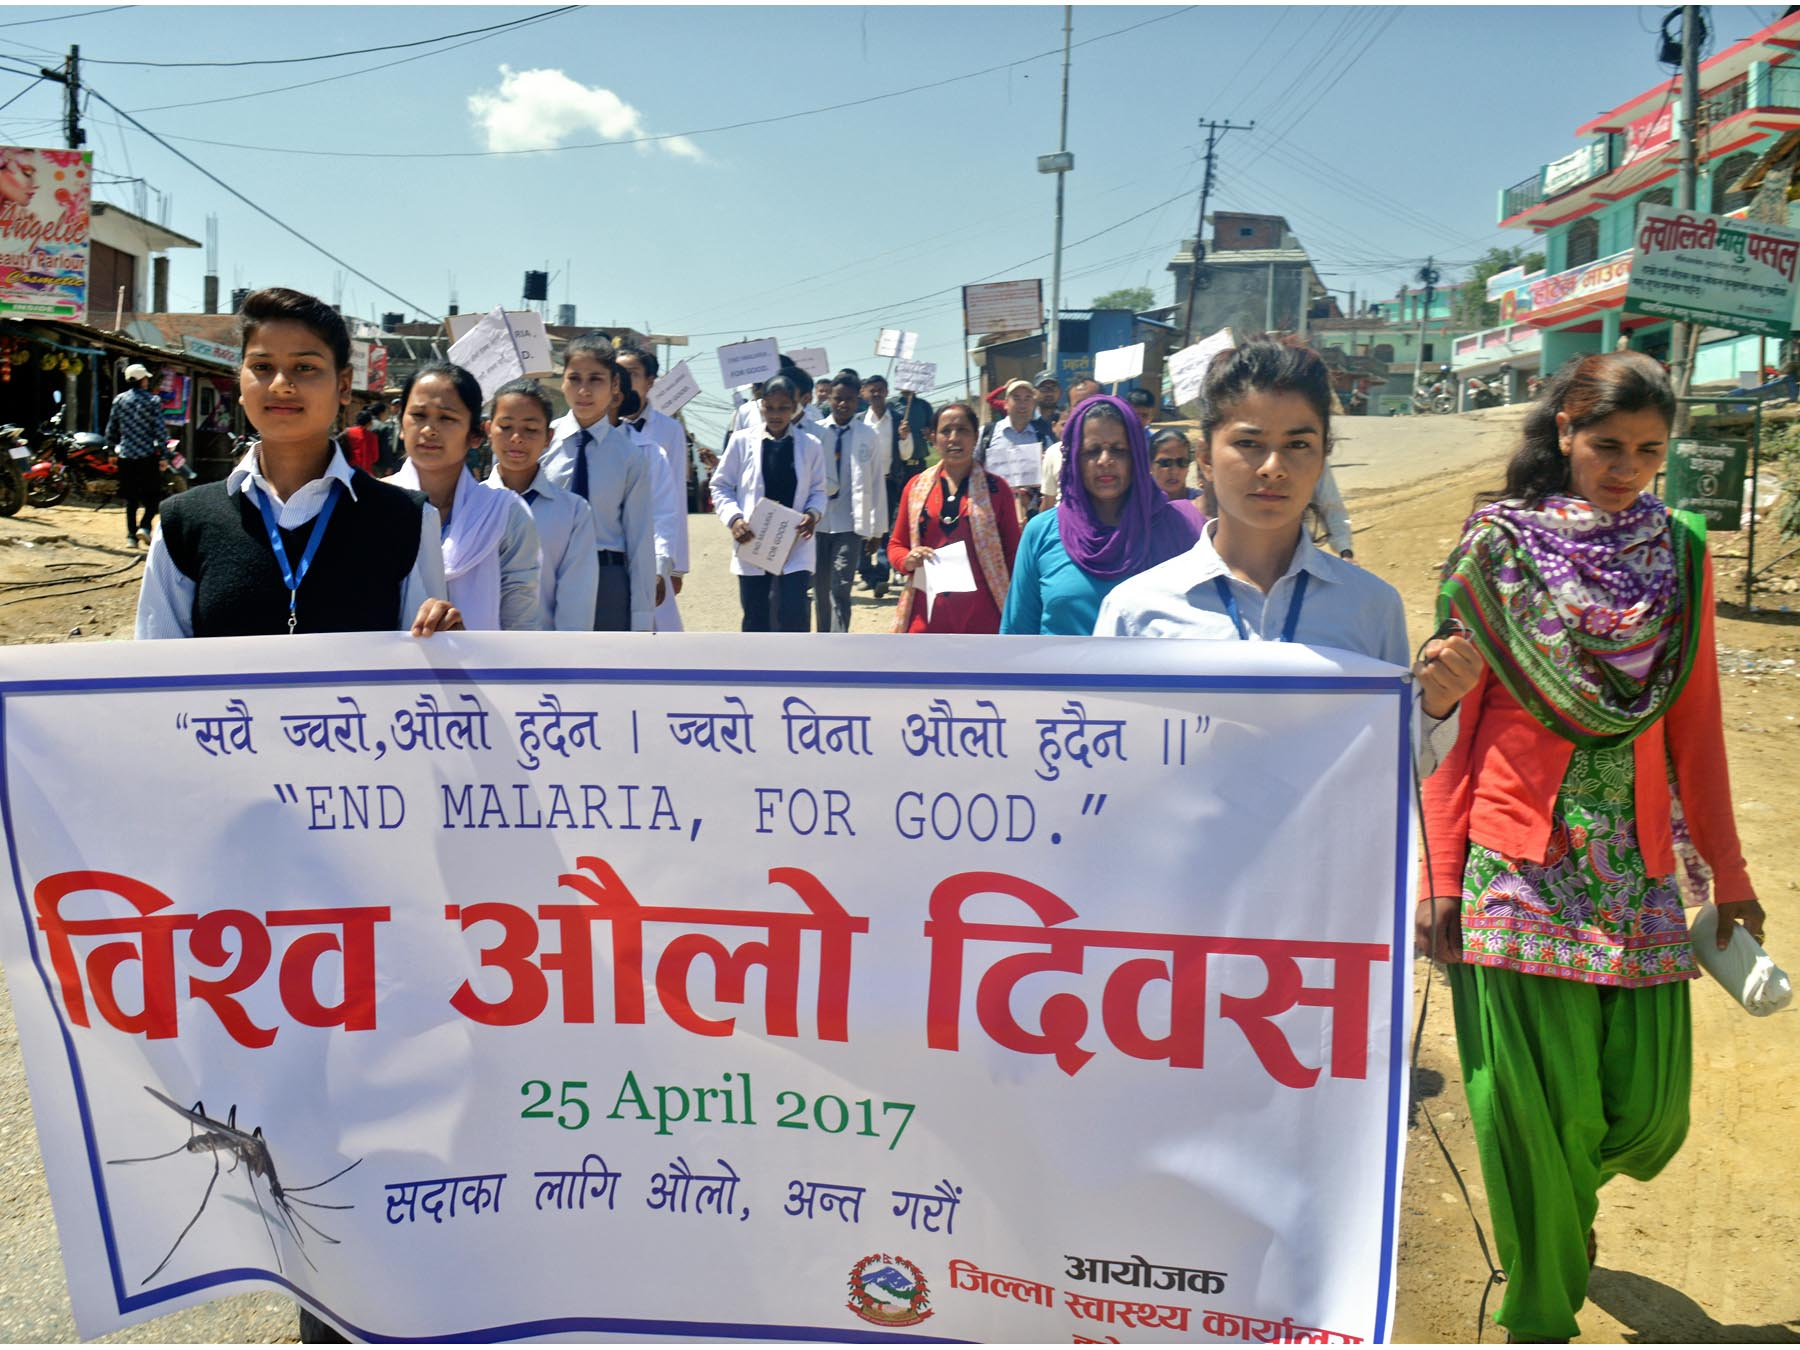 Students take part in a rally organised on the occasion of World Malaria Day in Dadeldhura district, on Tuesday, April 25, 2017. Photo: RSS